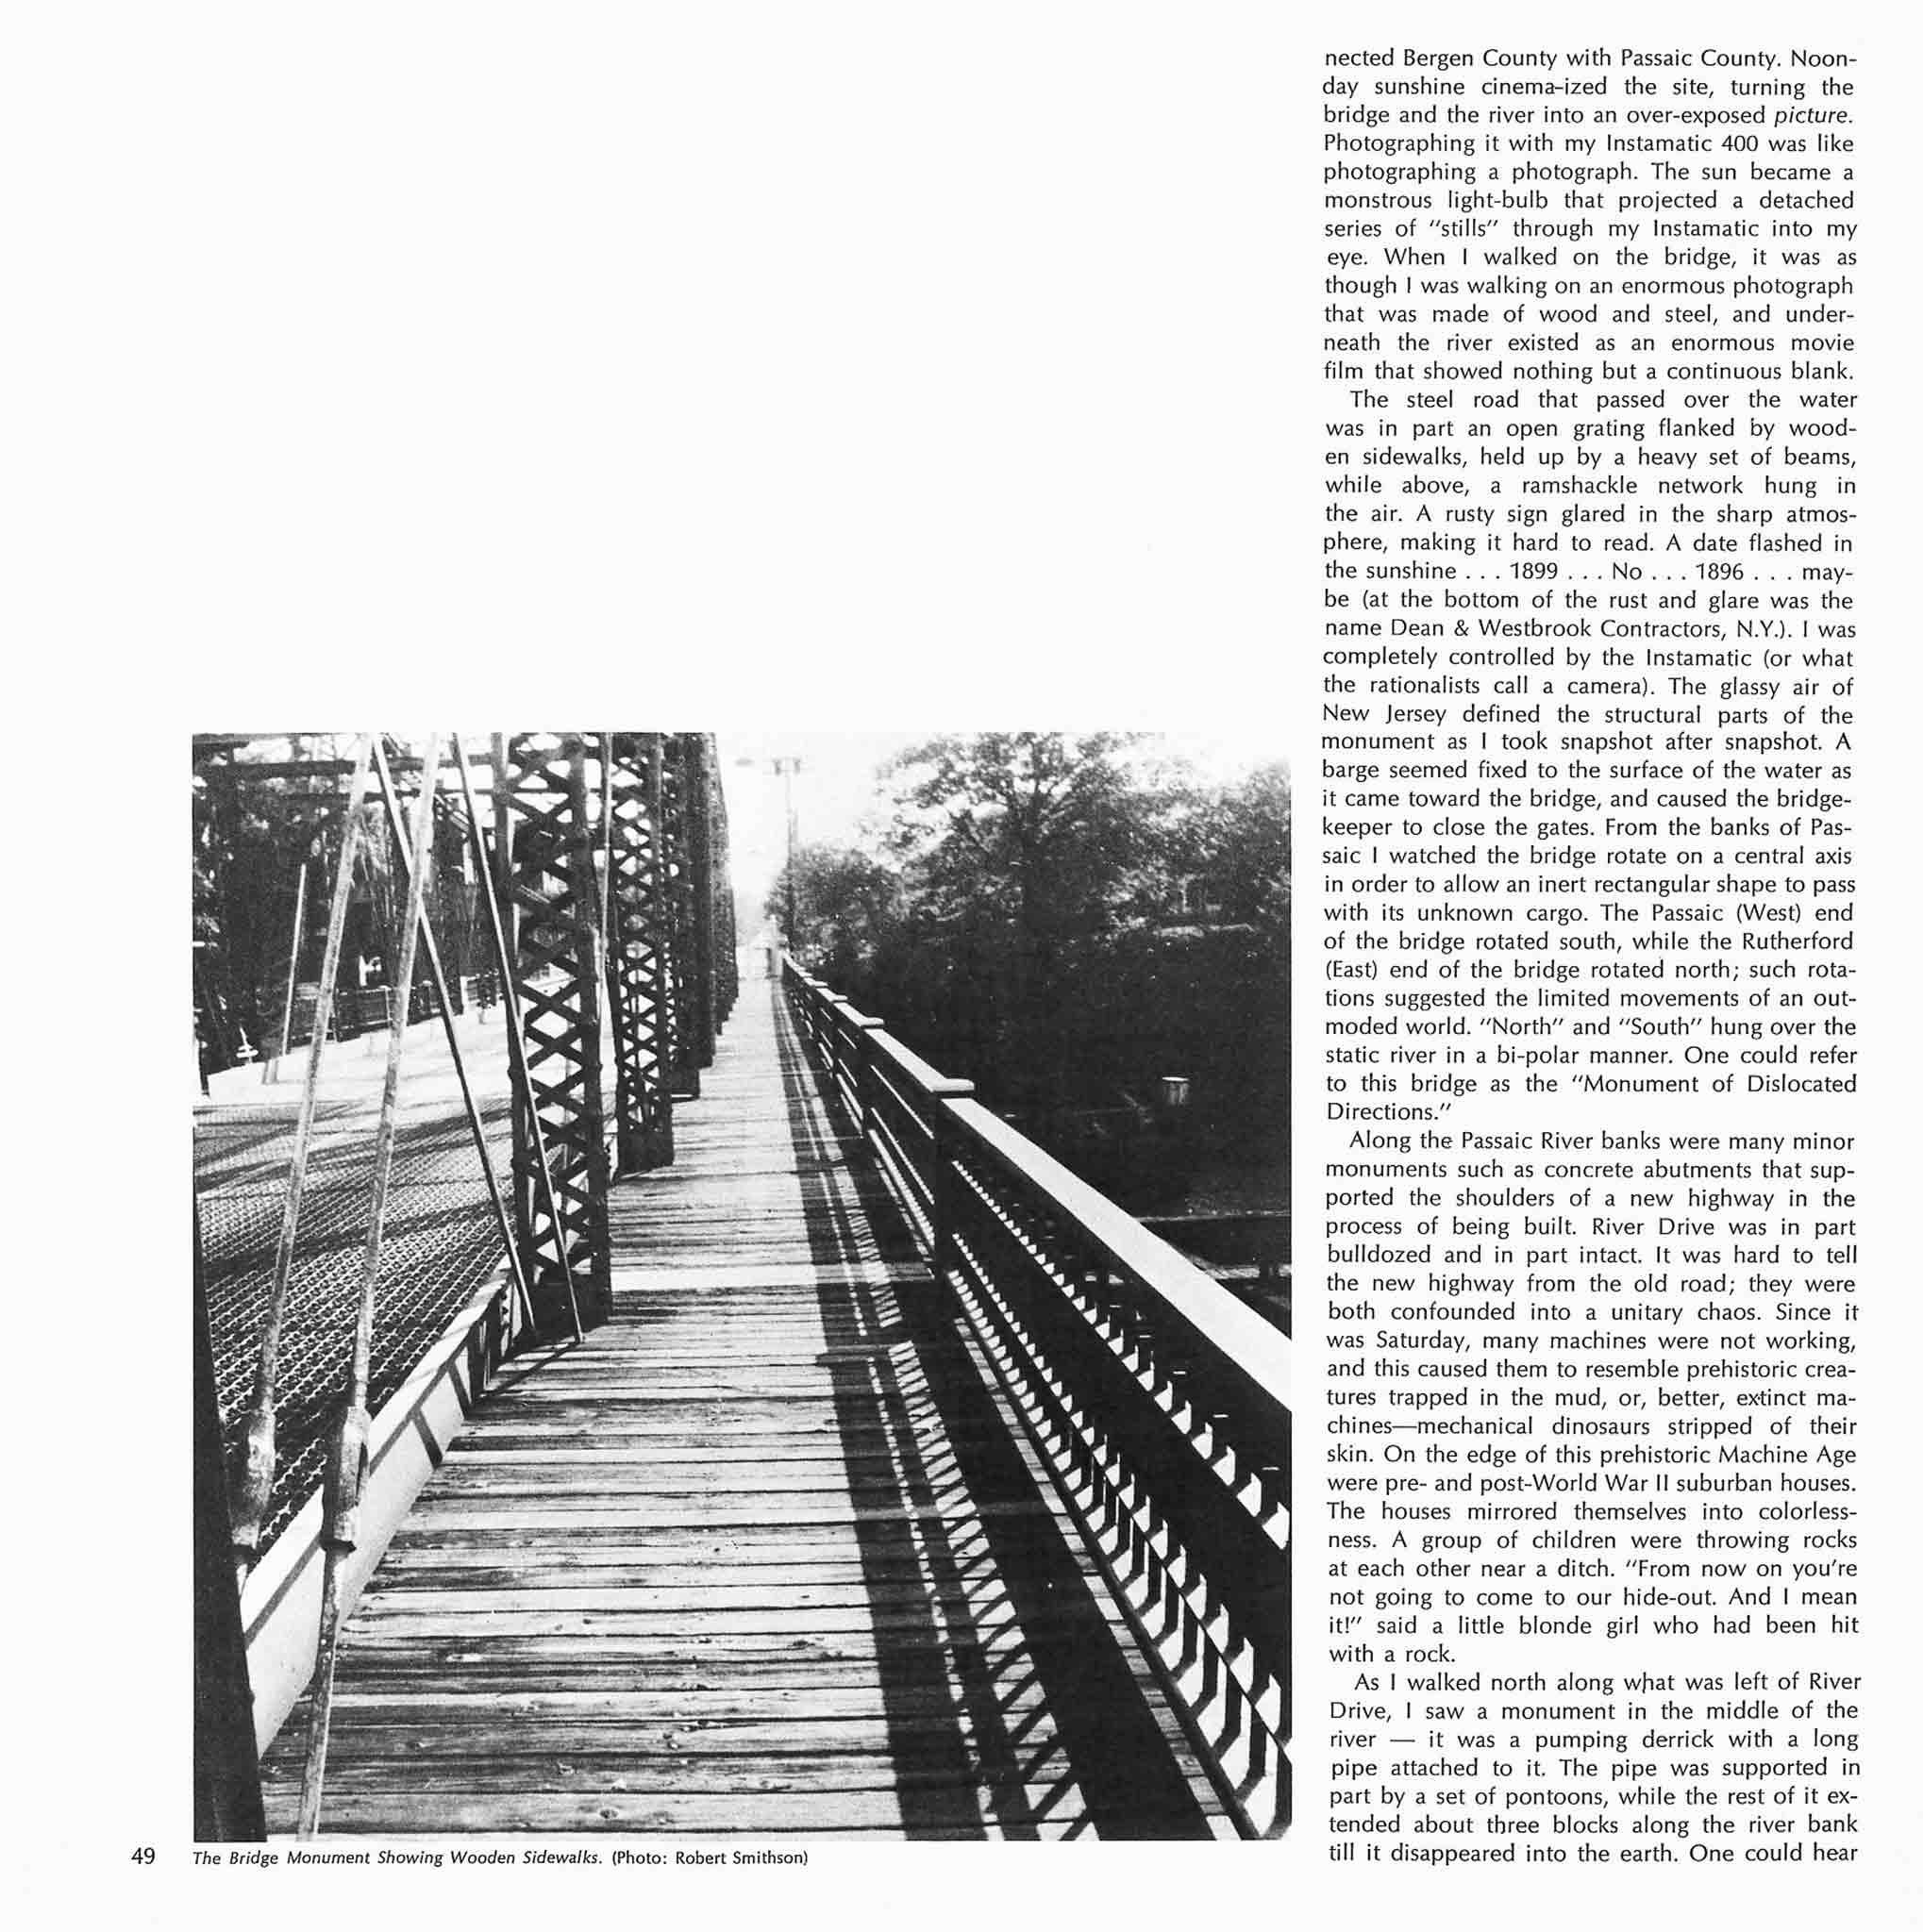 Magazine layout with one large black and white image of a walkway on a bridge on the left and a column of text on the right.